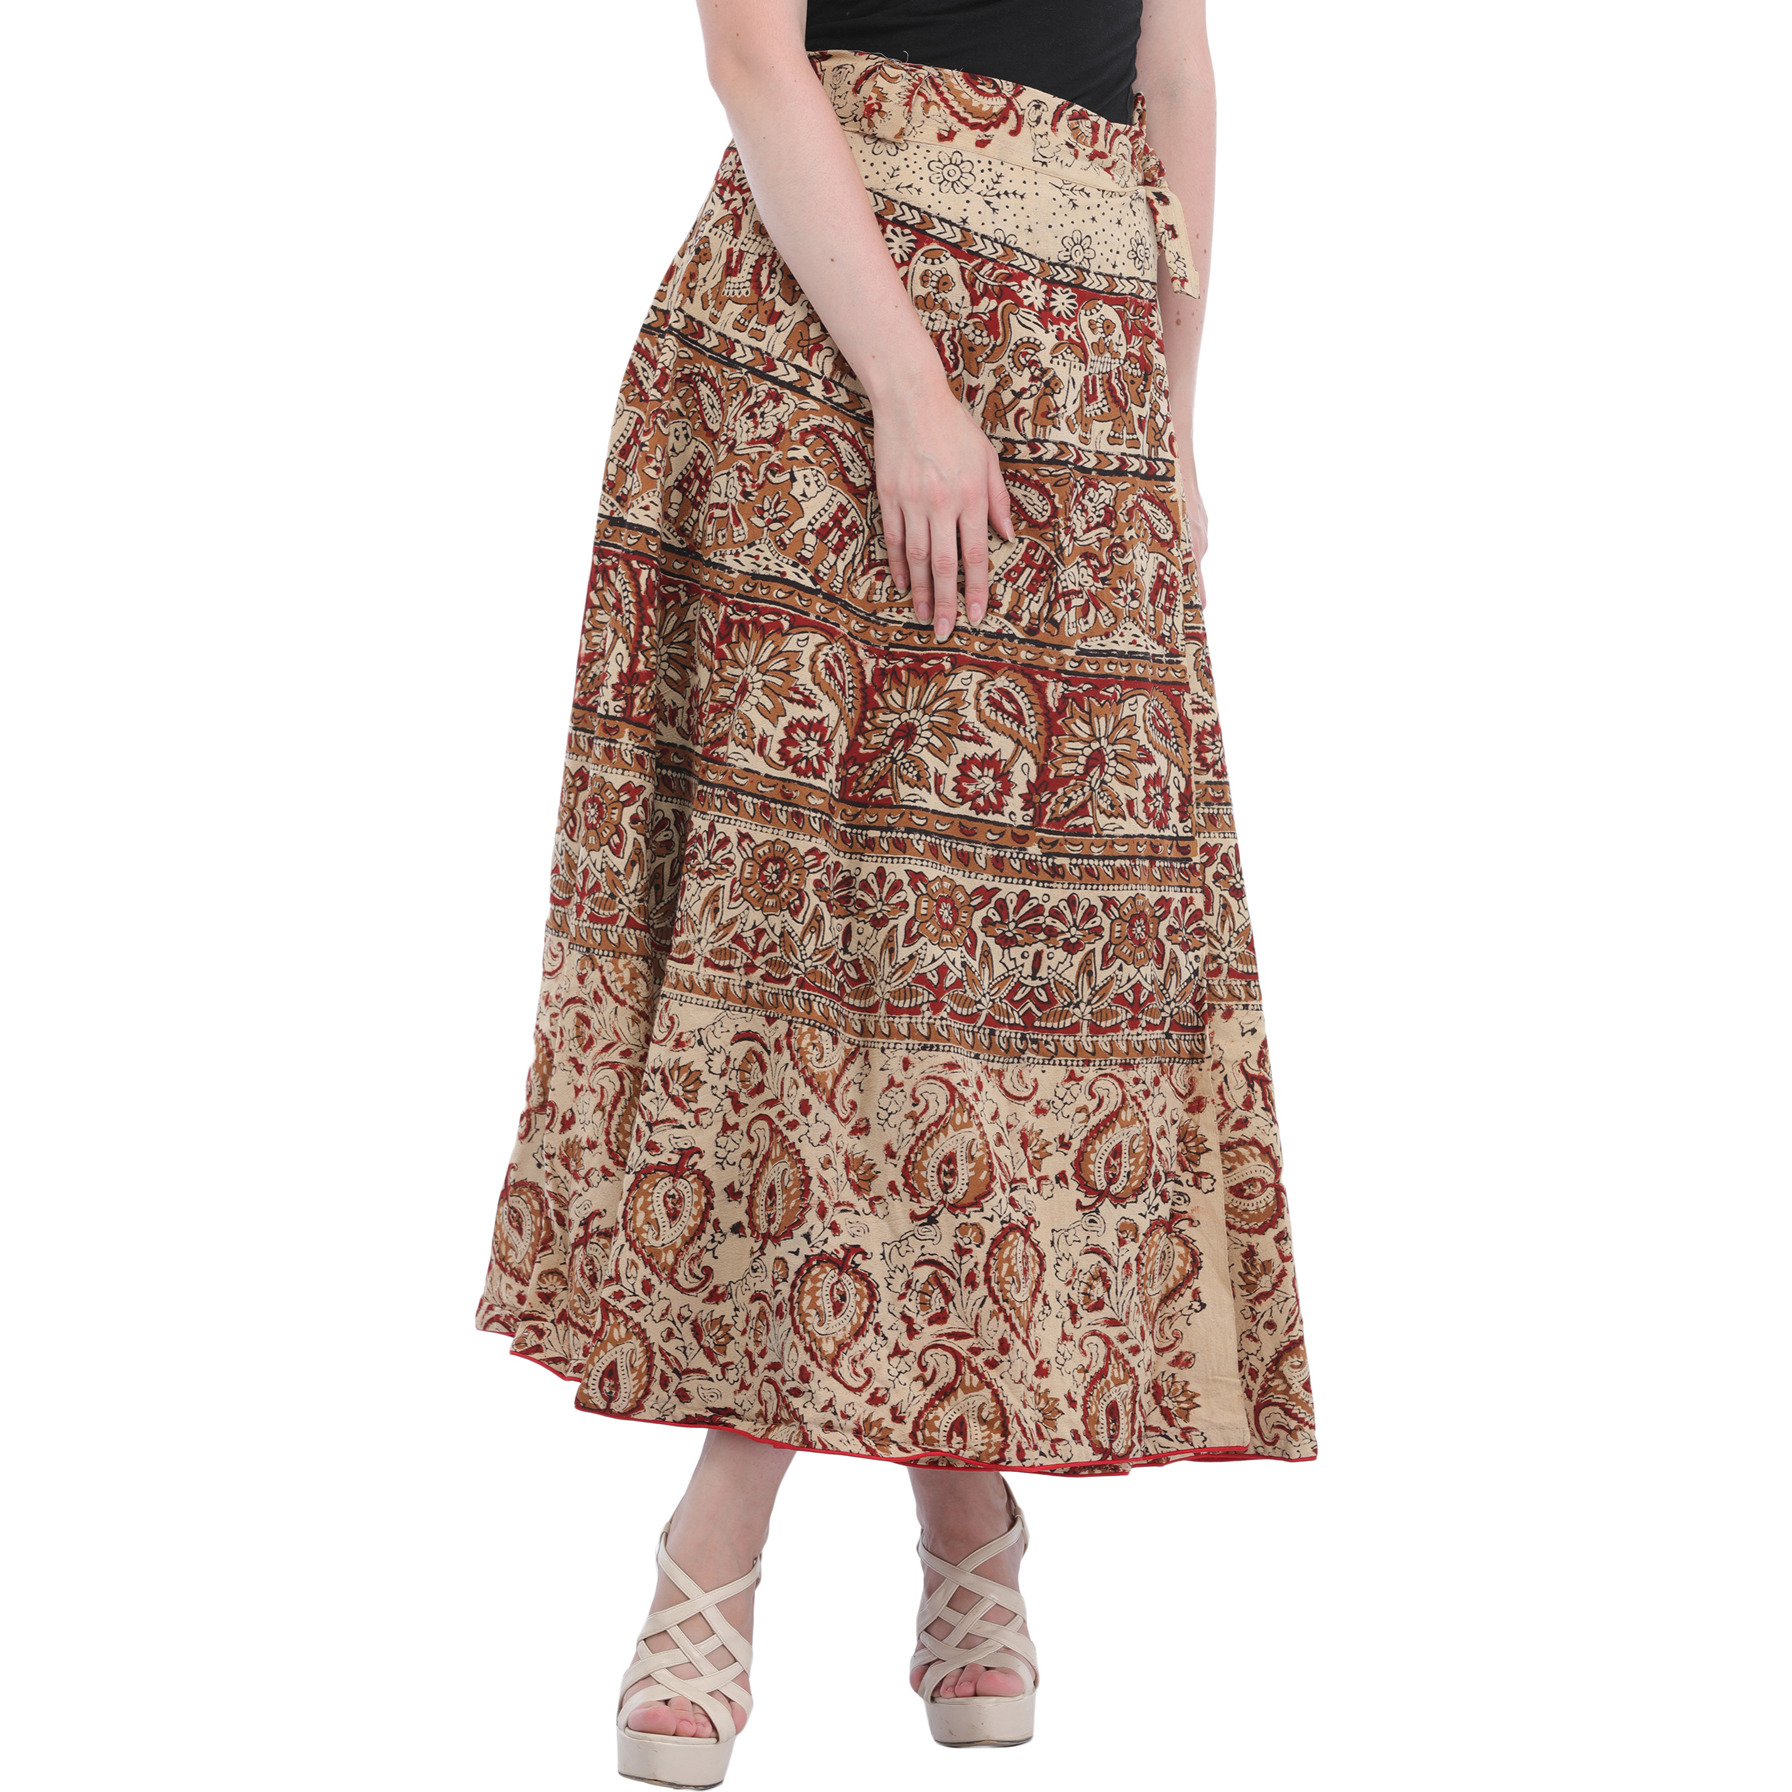 Bleached-Sand Wrap-Around Long Skirt from Pilkhuwa with Printed Paisleys and Elephants